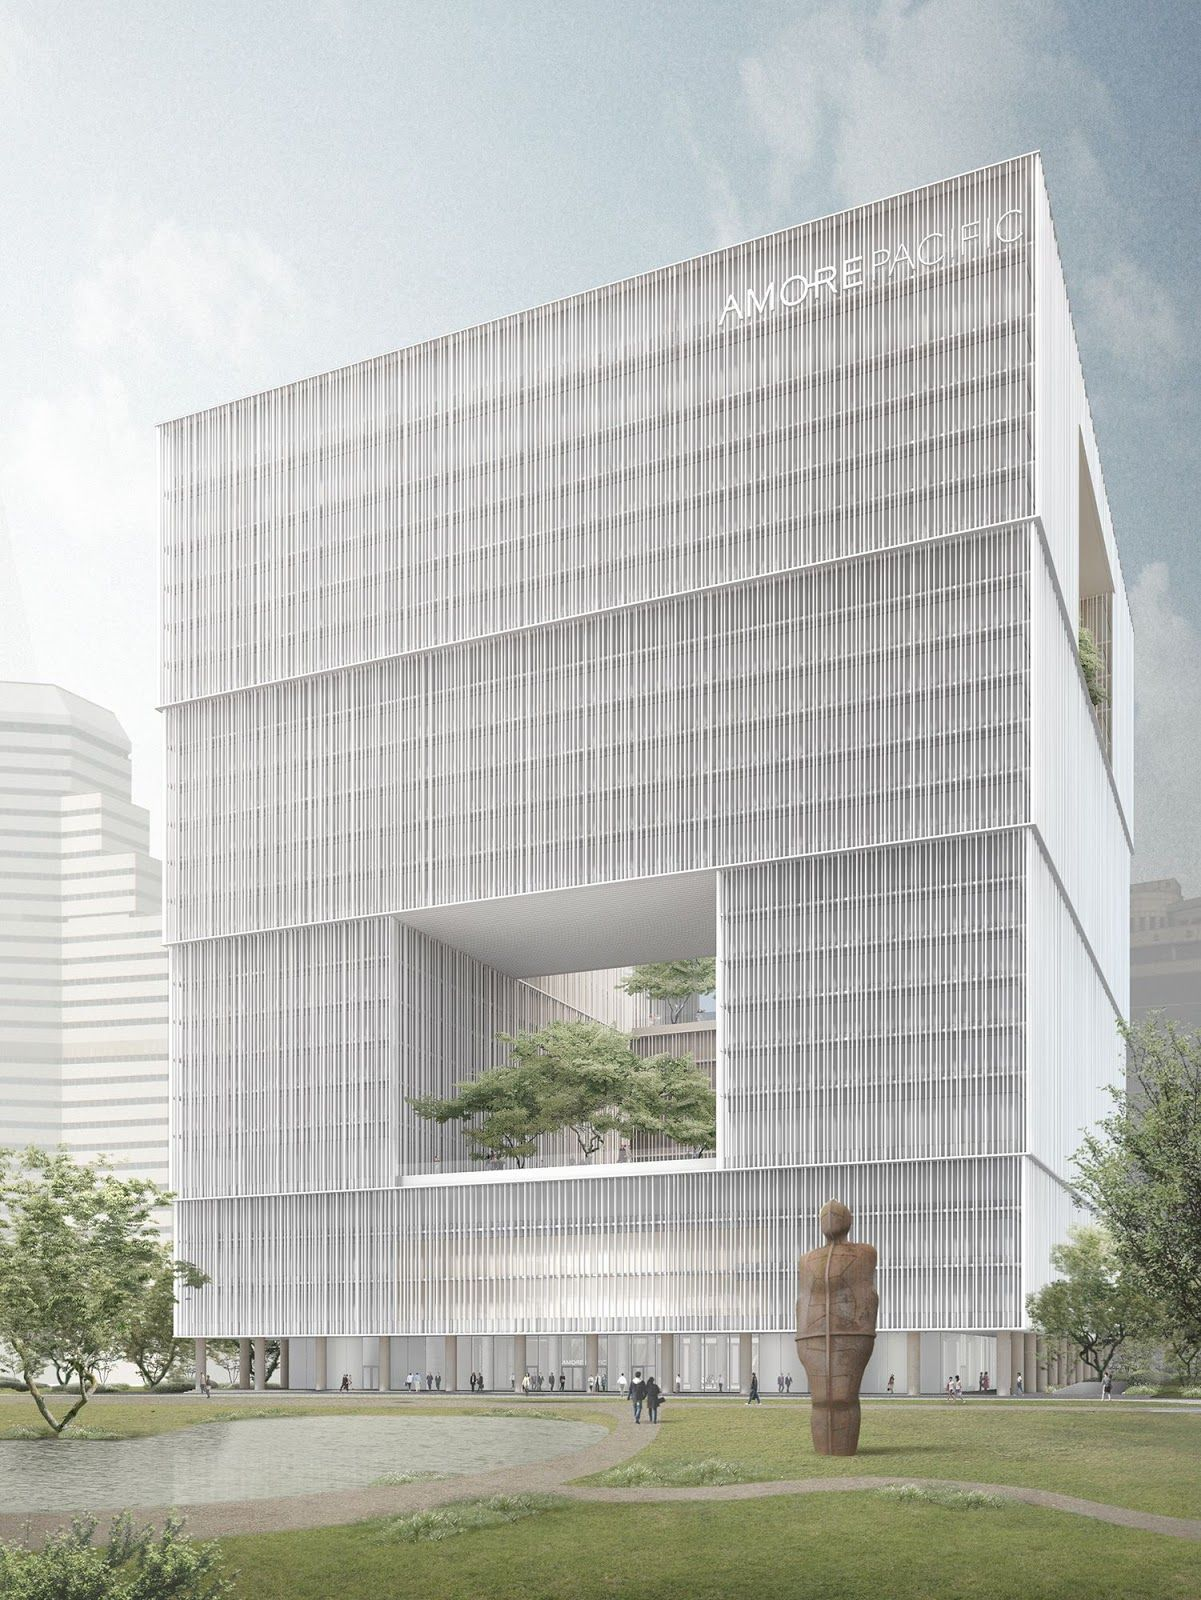 Amorepacific Headquarters Seoul David Chipperfield Architects Amorepacific Groundbreaking ceremony in Seoul for the Amorepacific